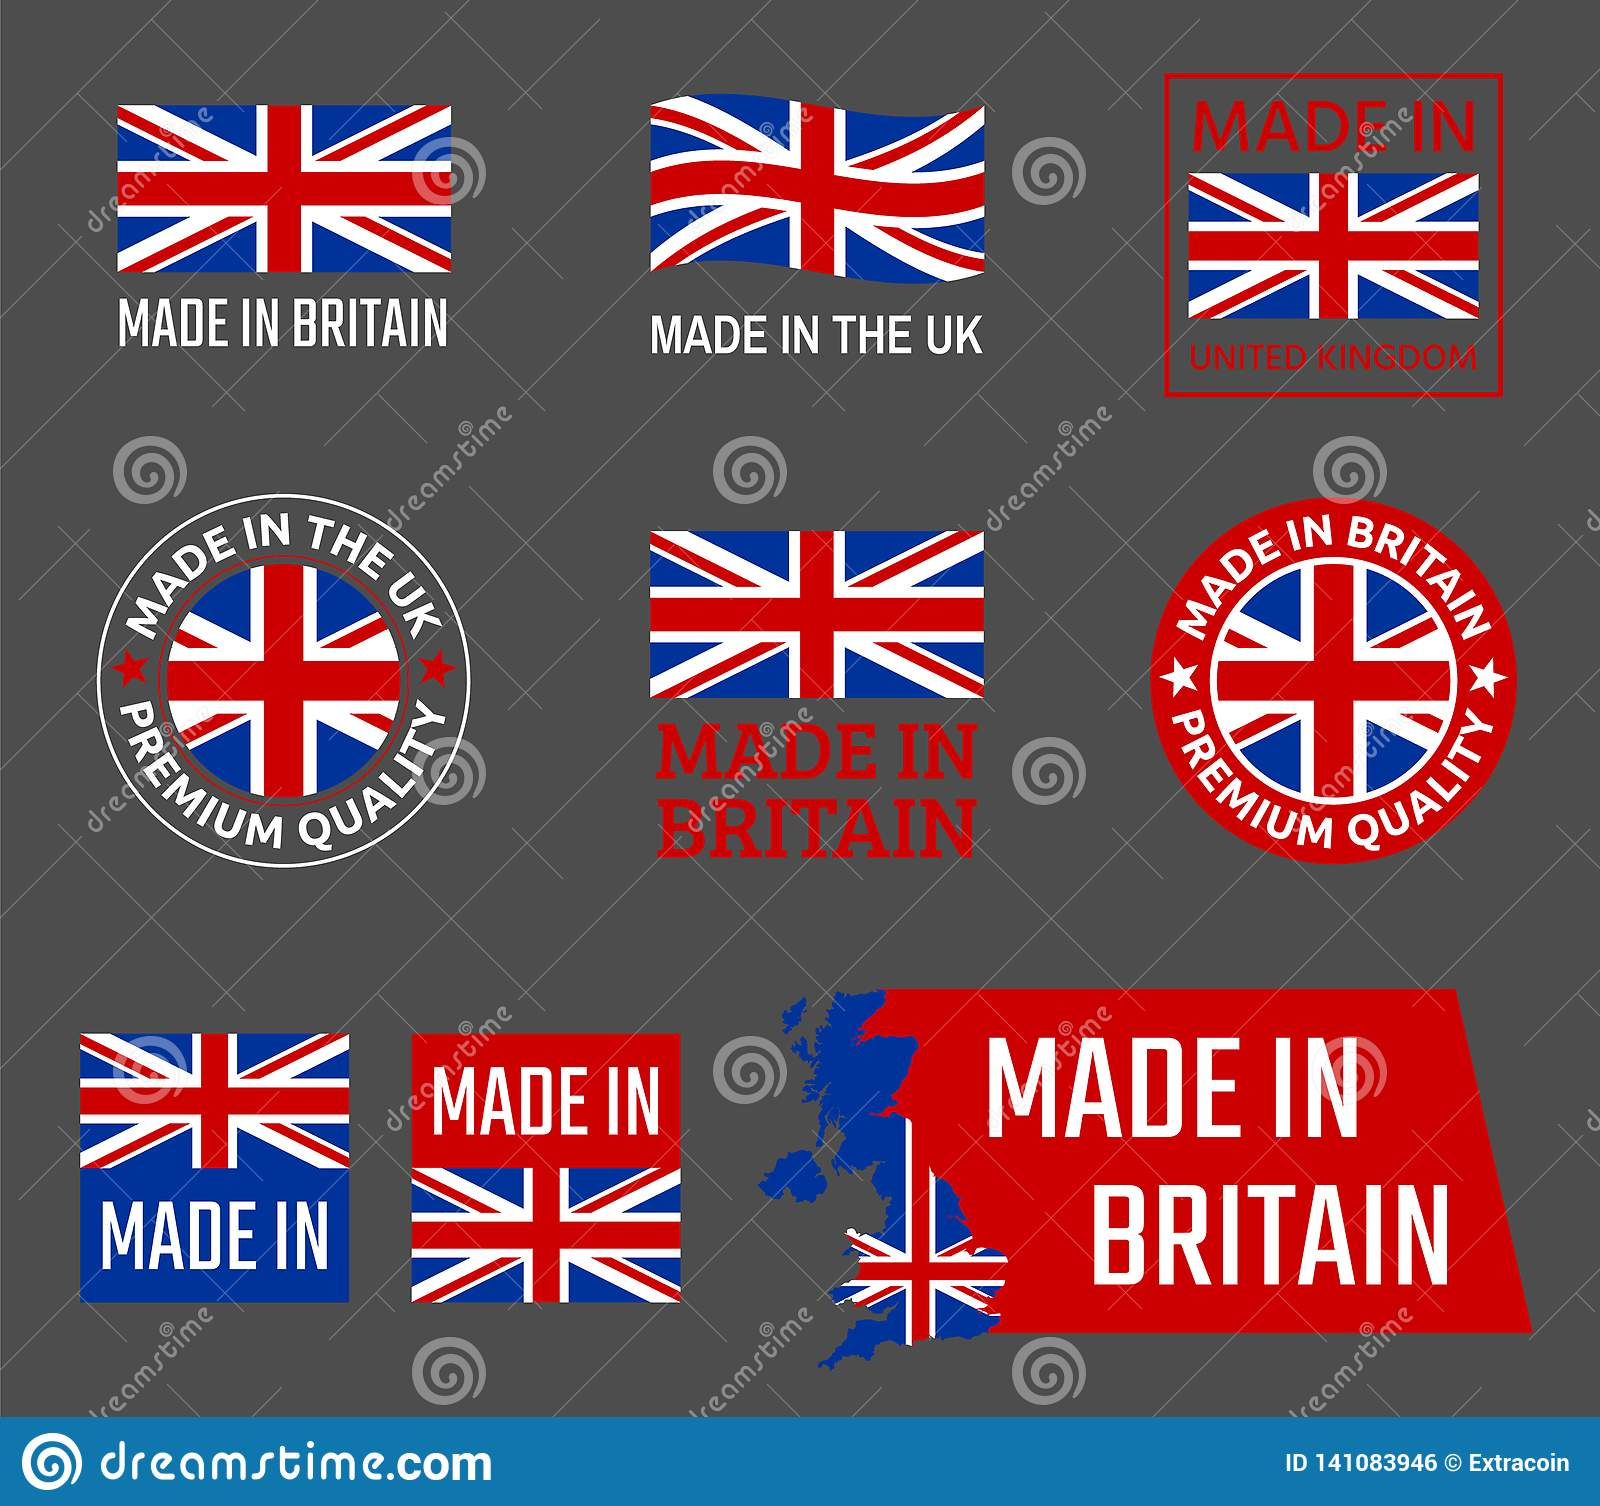 Made in great britain, United Kingdom product emblem